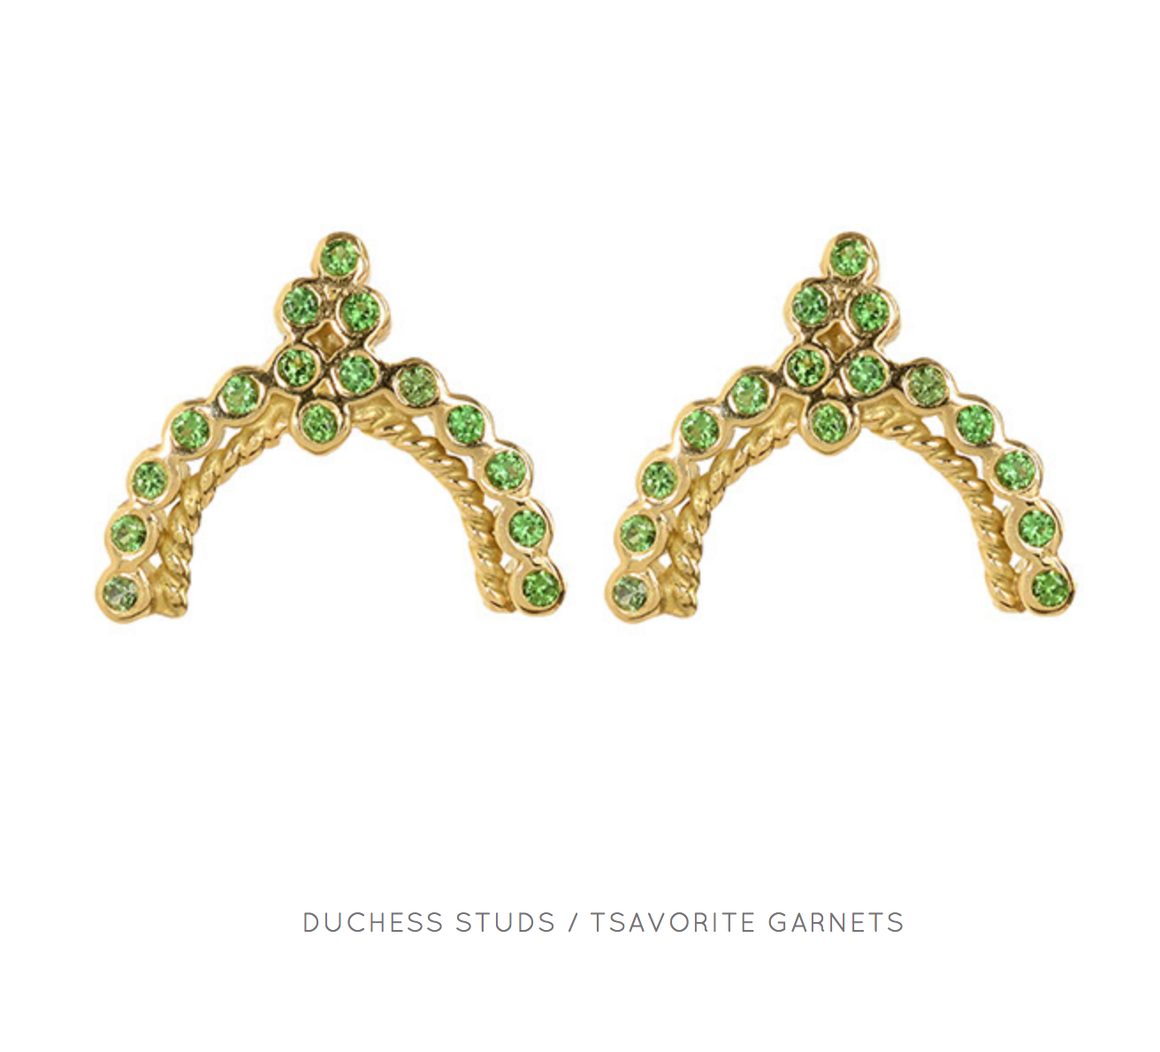 """Duchess Stud"" 18k Yellow Gold Tsavorite Earrings by Unhada - Talisman Collection"